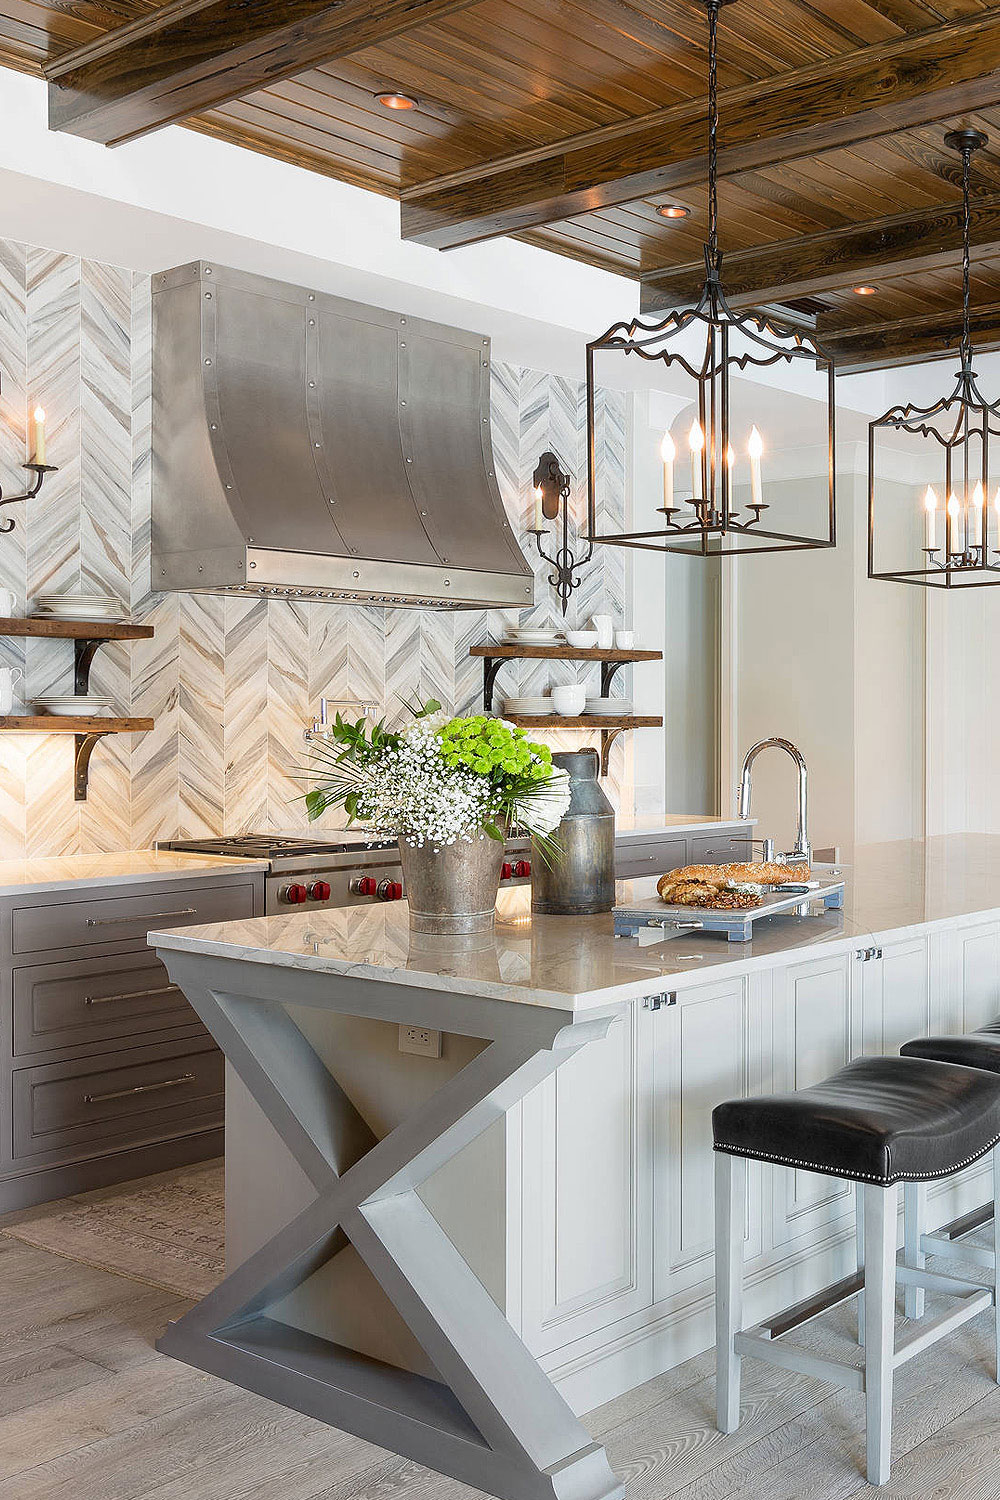 The Marble Textured Chevron Backsplash Compliments The Cabinets And Appliances The Wooden Shelves And Ceiling Bring A Cozy Vibe Into The Kitchen Backsplash Com